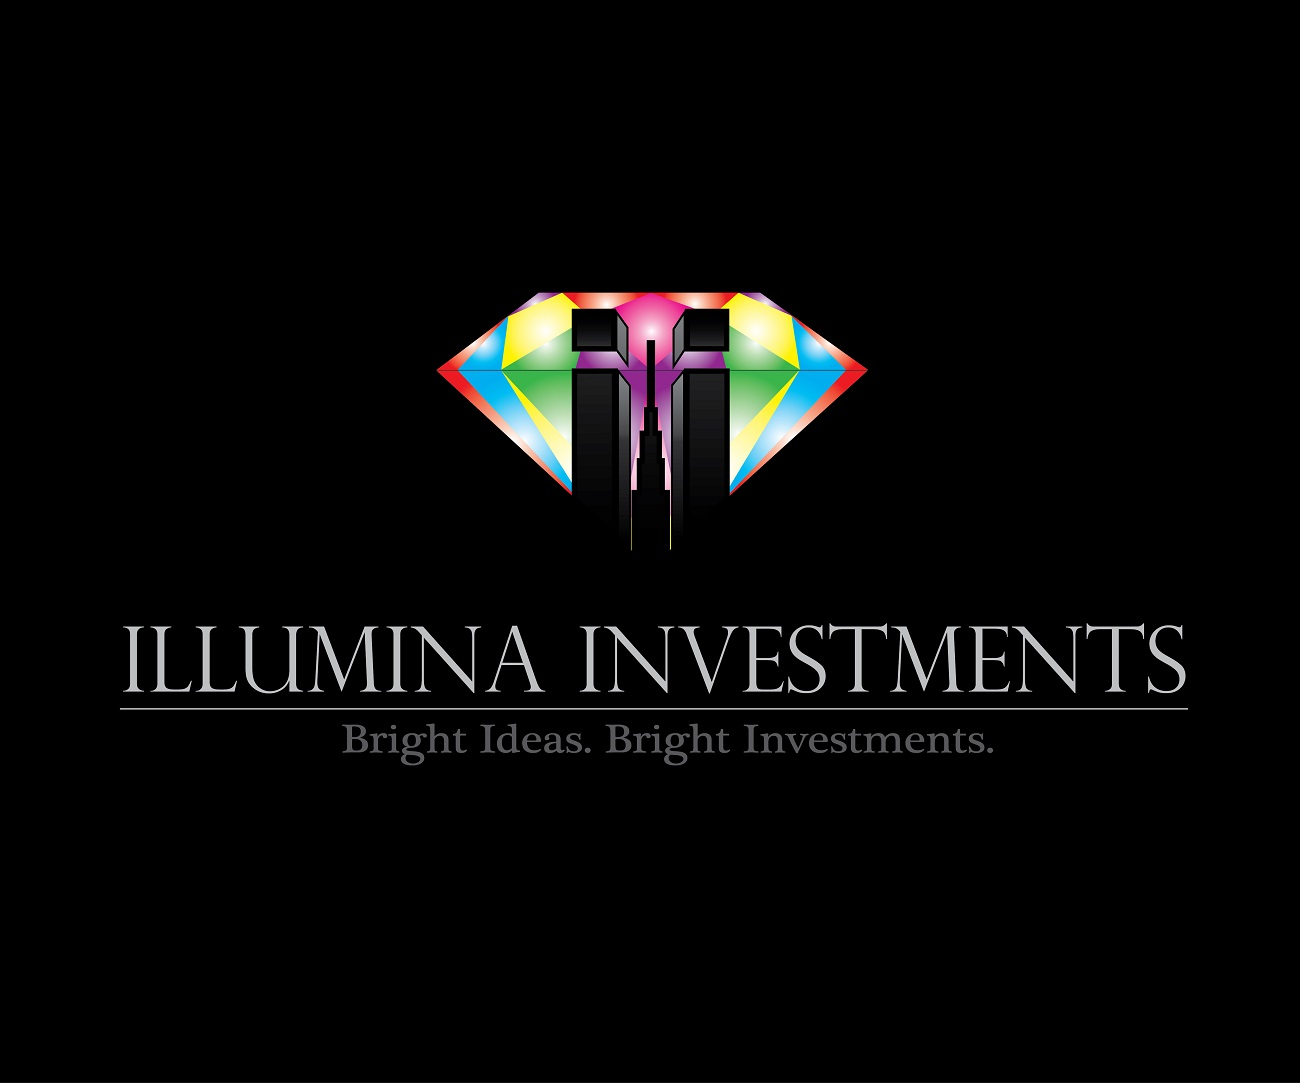 Logo Design by jhunzkie24 - Entry No. 57 in the Logo Design Contest Creative Logo Design for Illumina Investments.